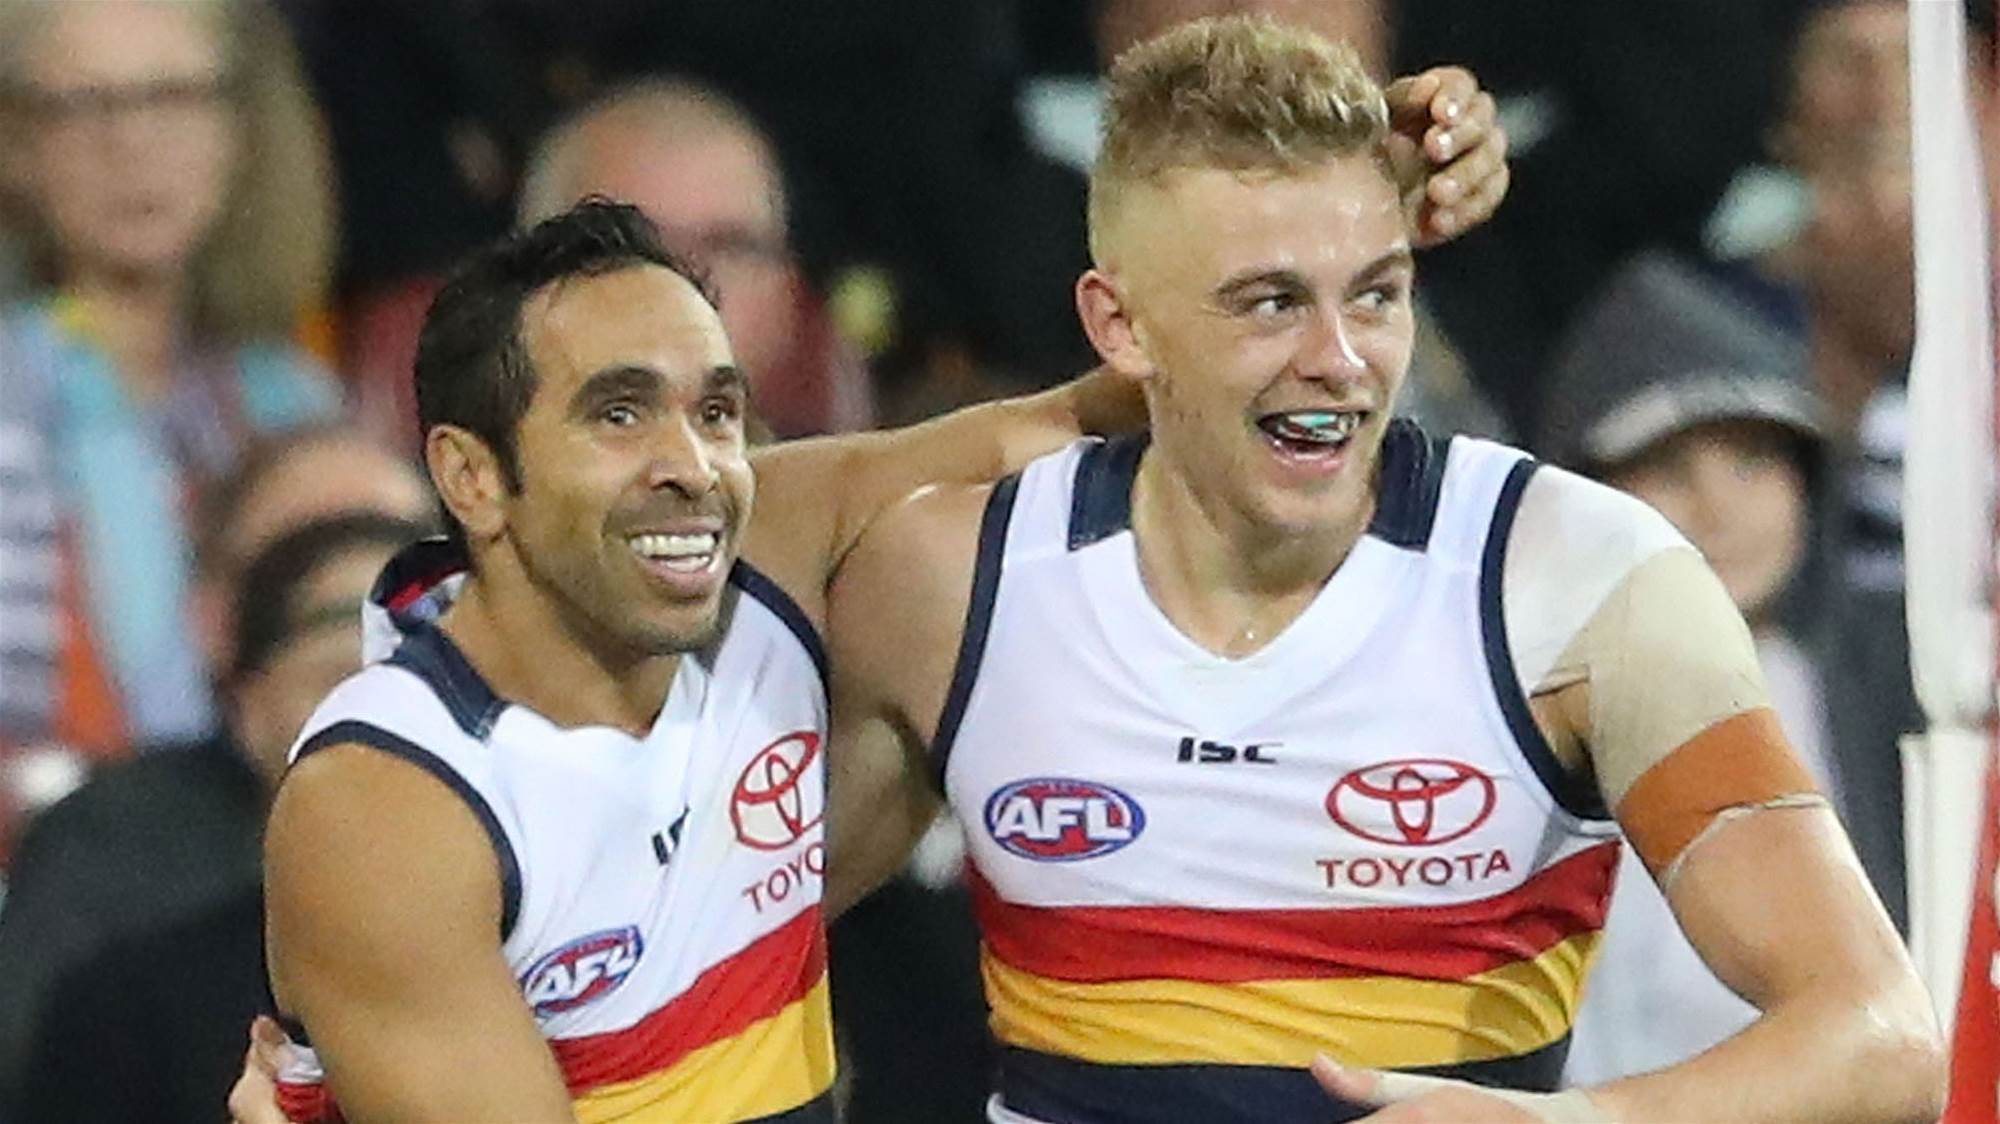 The good, the bad and the ugly from Round 9